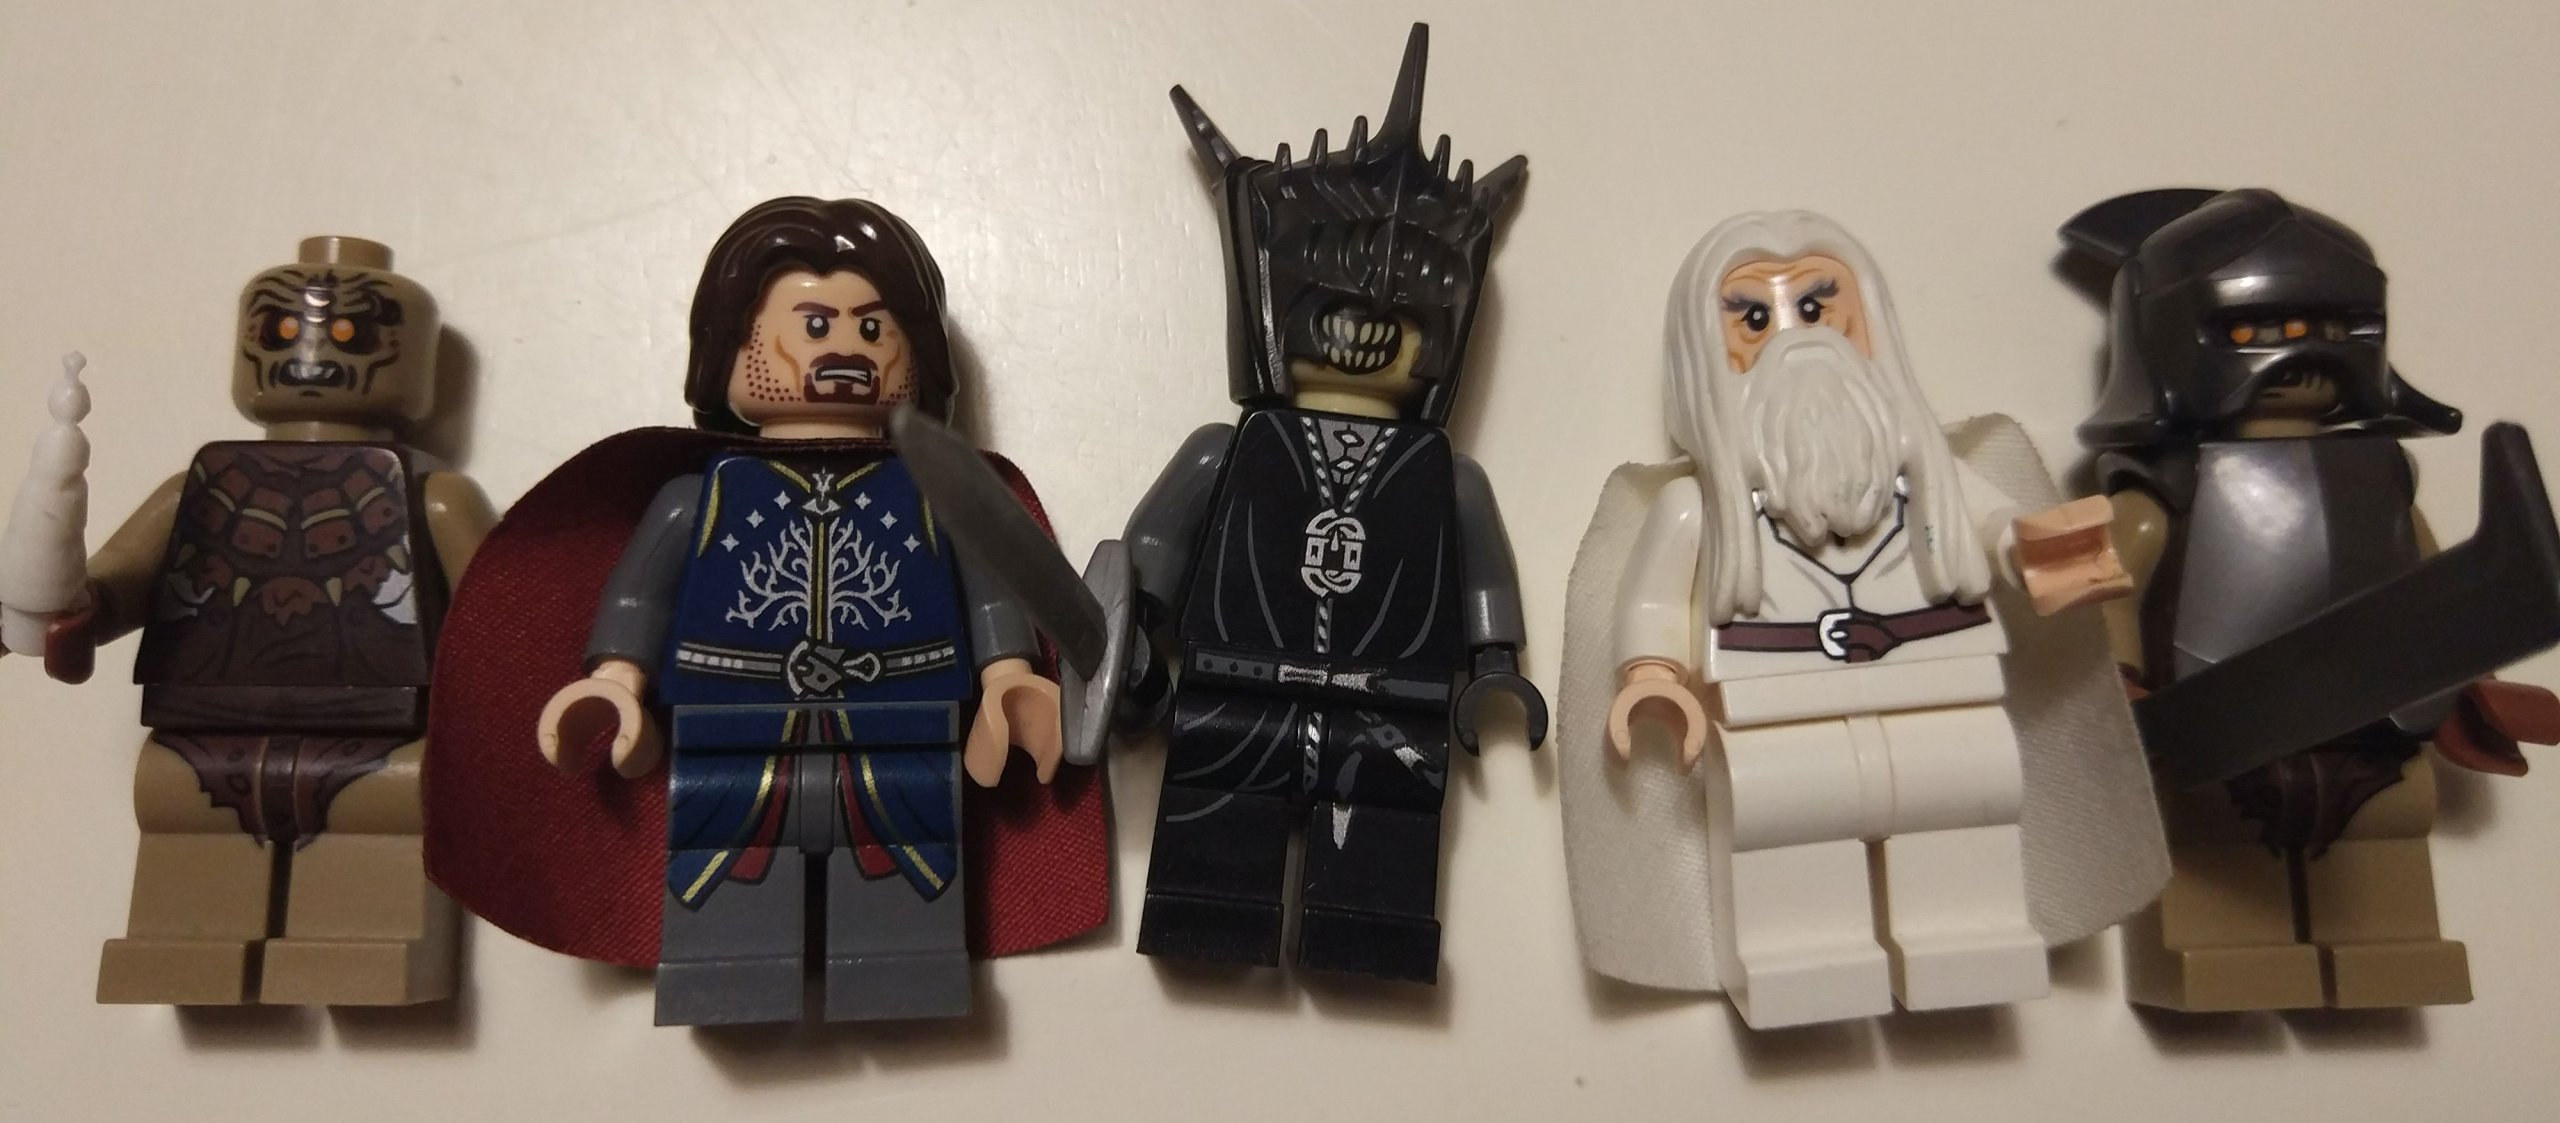 Lego Lord Of The Rings 79007 Bitwa Hobbit Postacie 7016079107 Battle At Black Gate